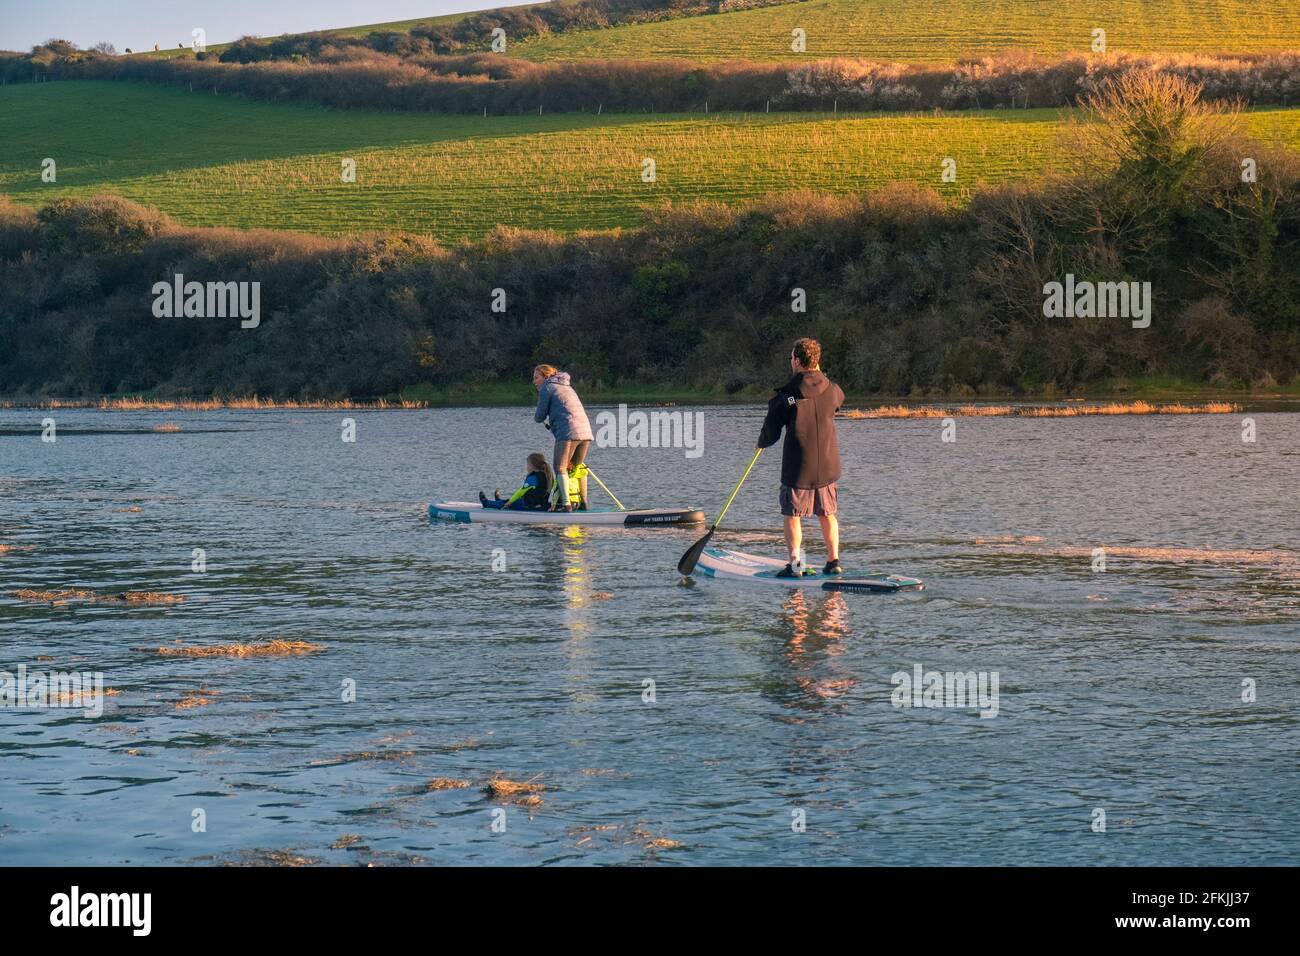 A family of holidaymakers having fun paddling their Stand Up Paddleboards at high tide on the Gannel River in Newquay in Cornwall. Stock Photo